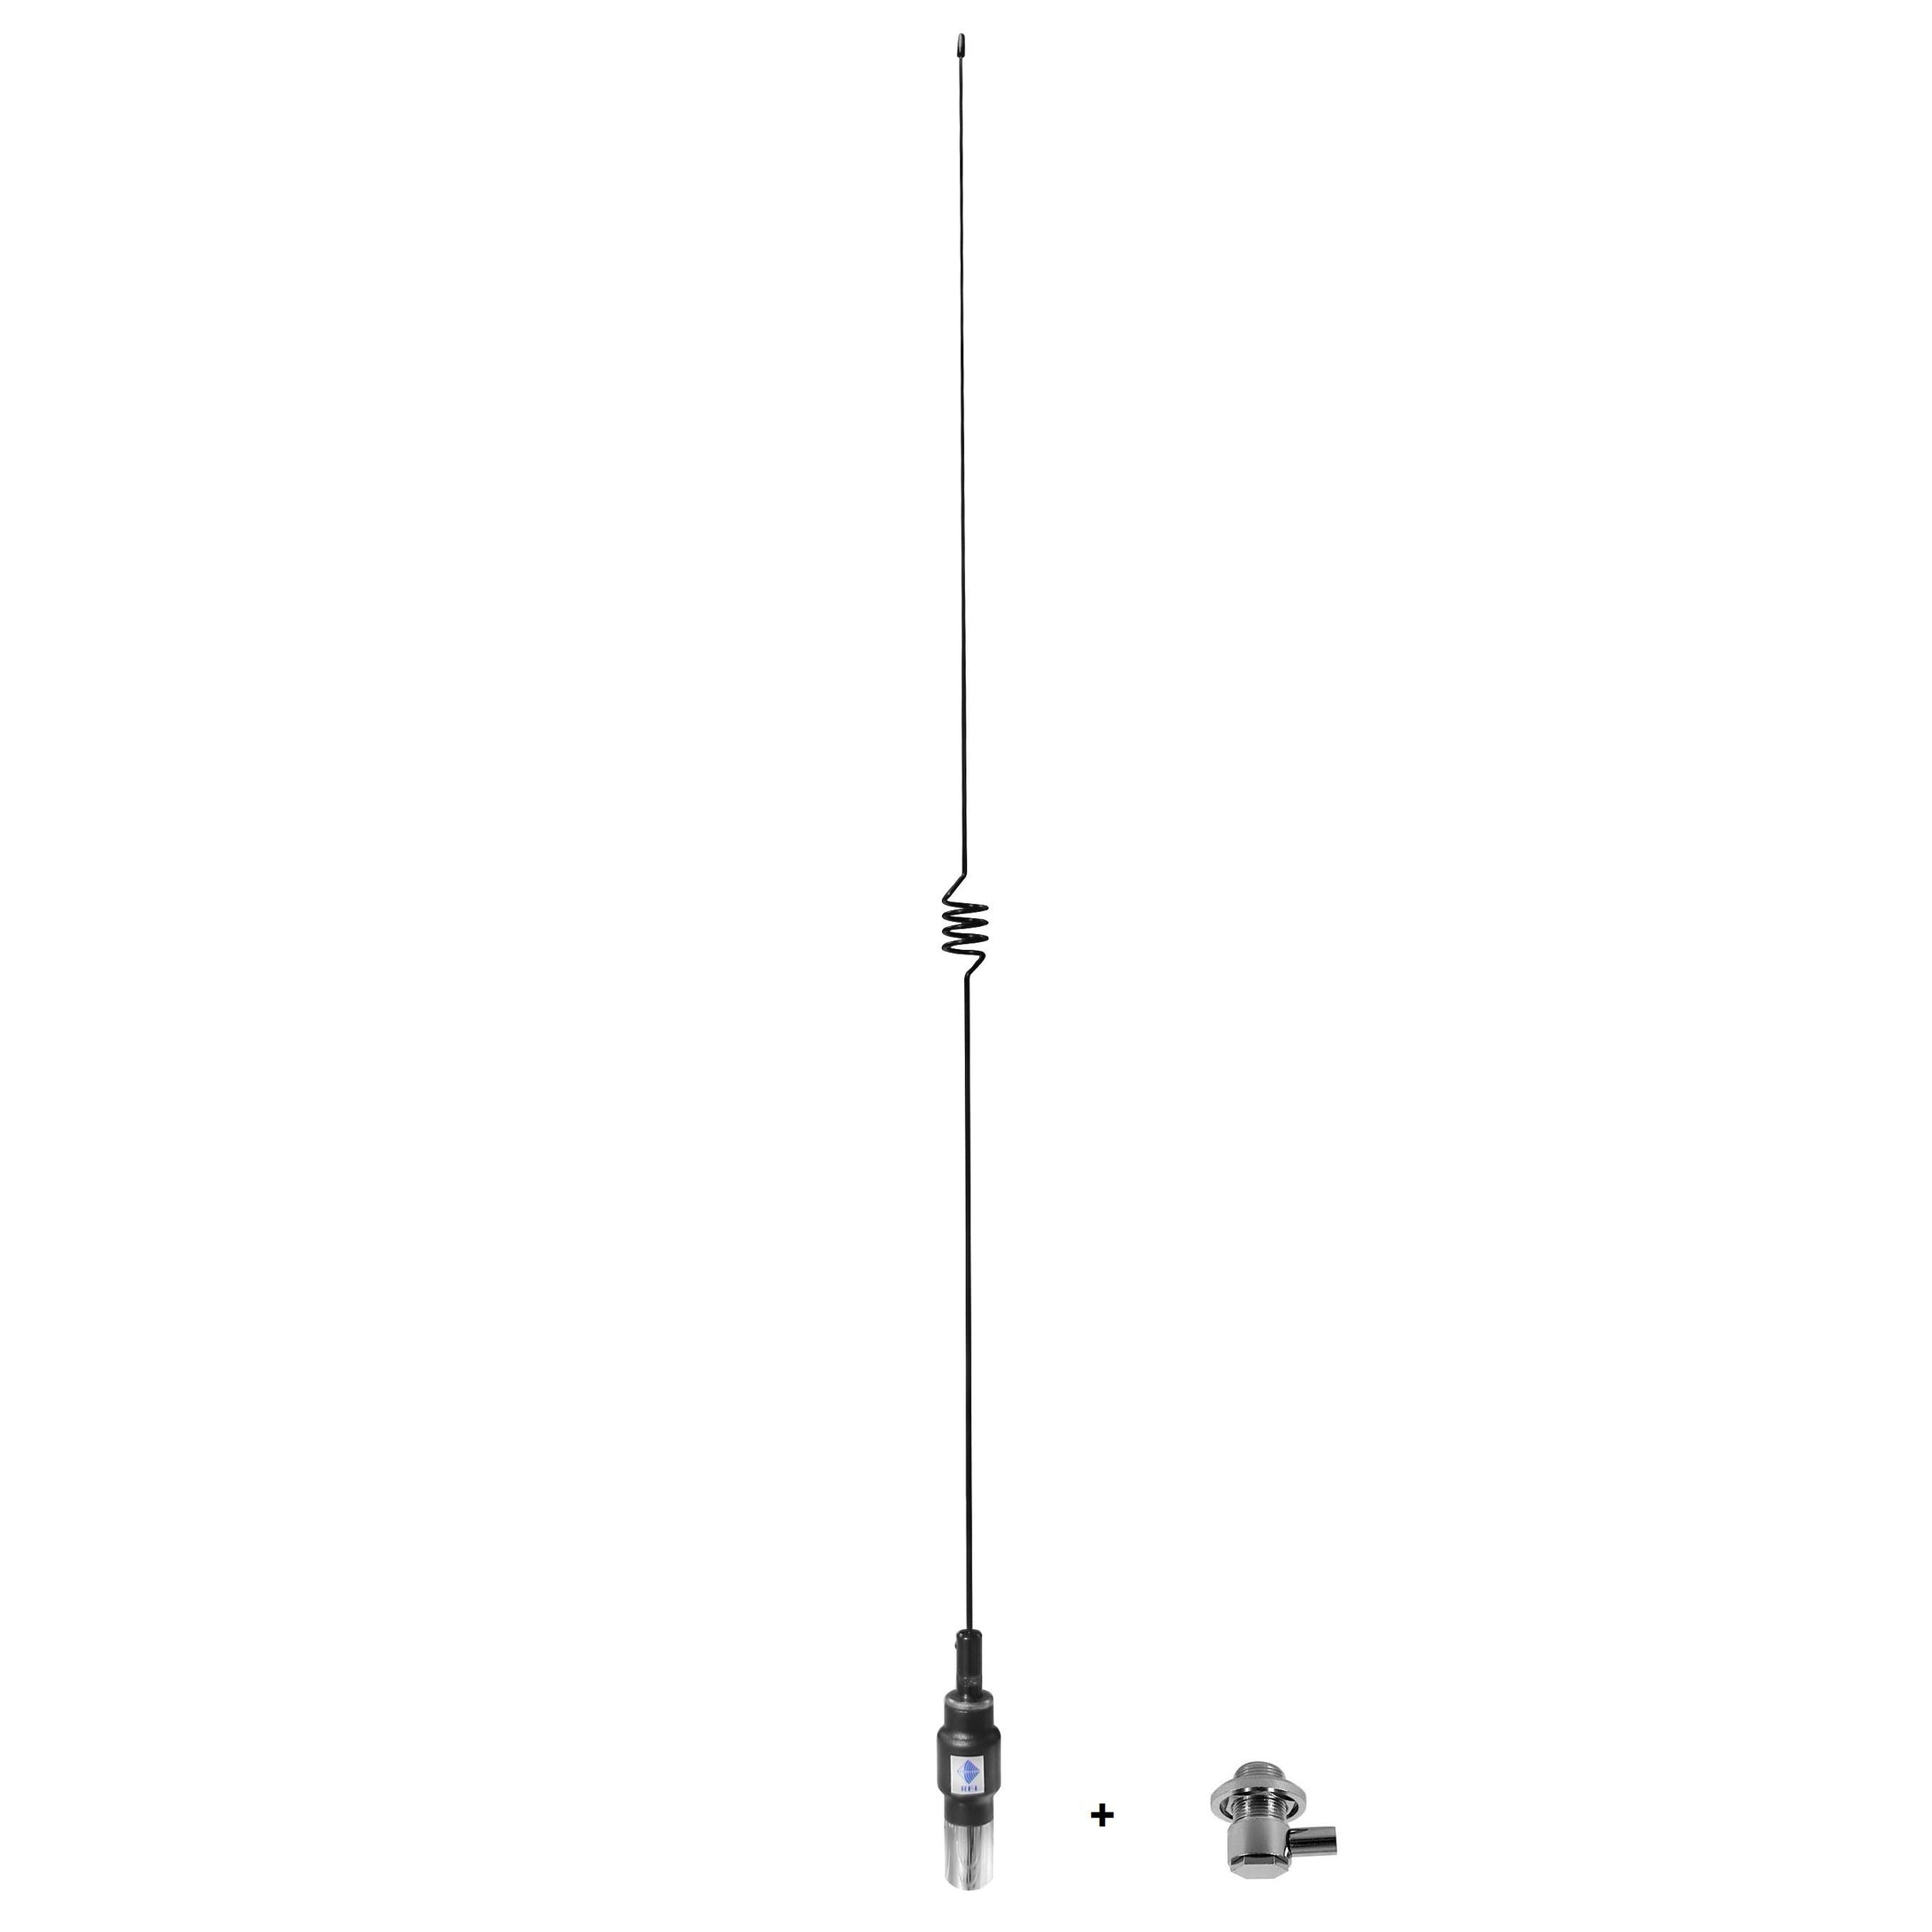 RFI CD63-71-50 UHF CB (477 MHz) Mopole Antenna - MBC Mount - Point to Point Distributions